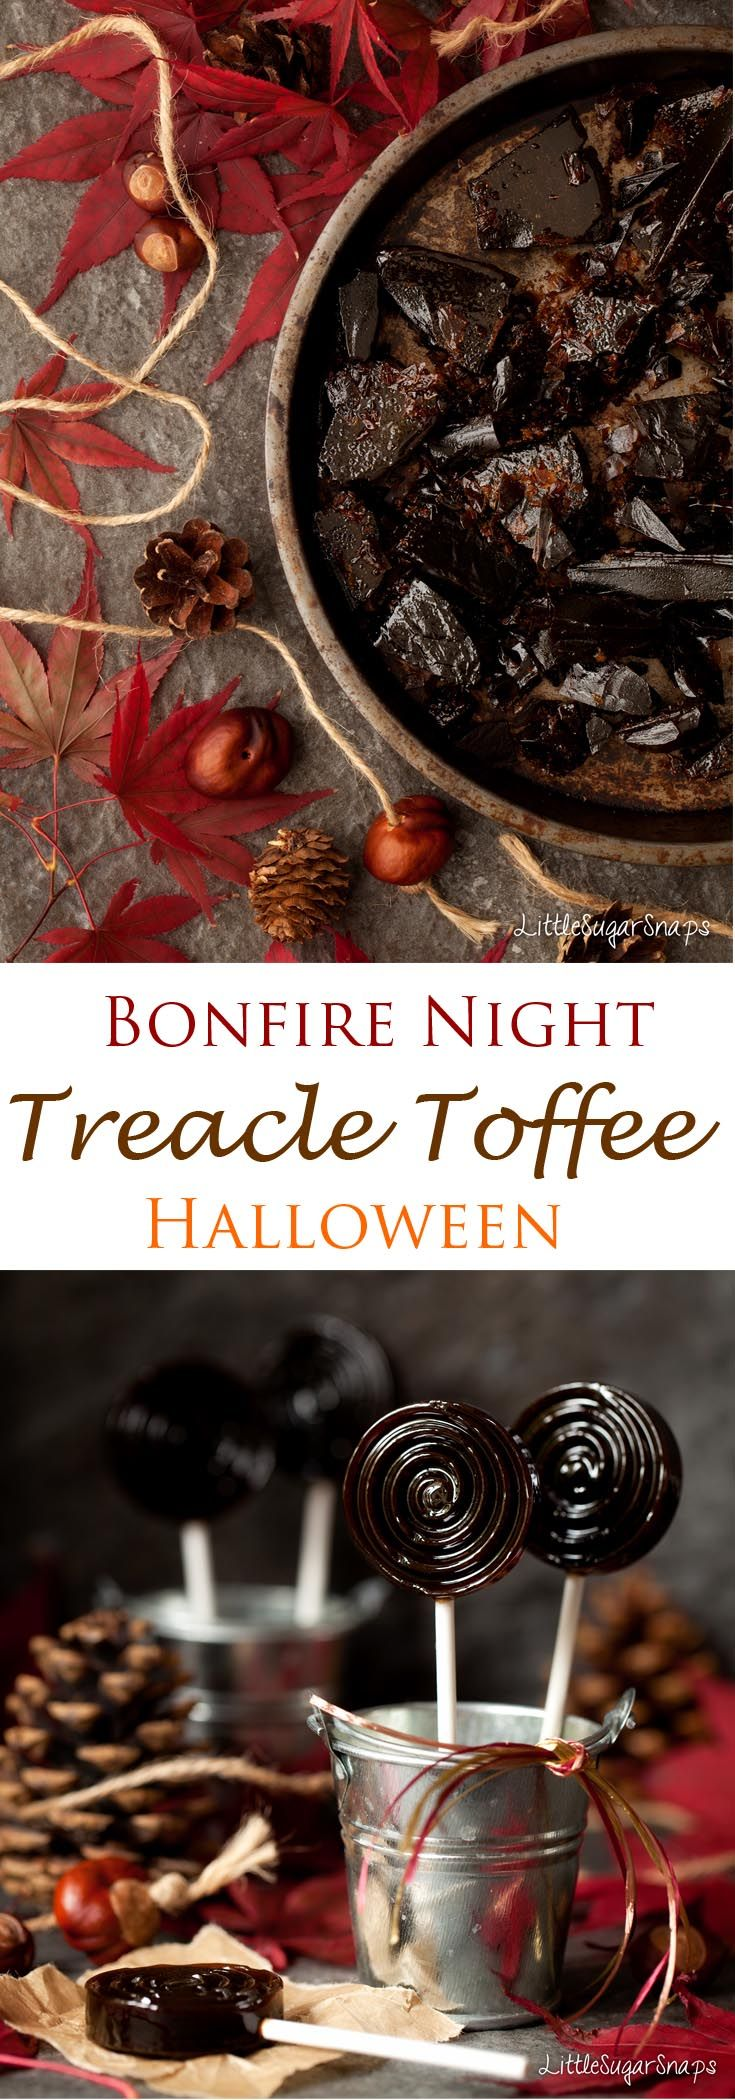 Bonfire Toffee (Treacle Toffee): rich, buttery and deliciously dark, this toffee also makes a great Halloween treat. #BonfireToffee #TreacleToffee #BonfireNight #halloween #toffee #PlotToffee